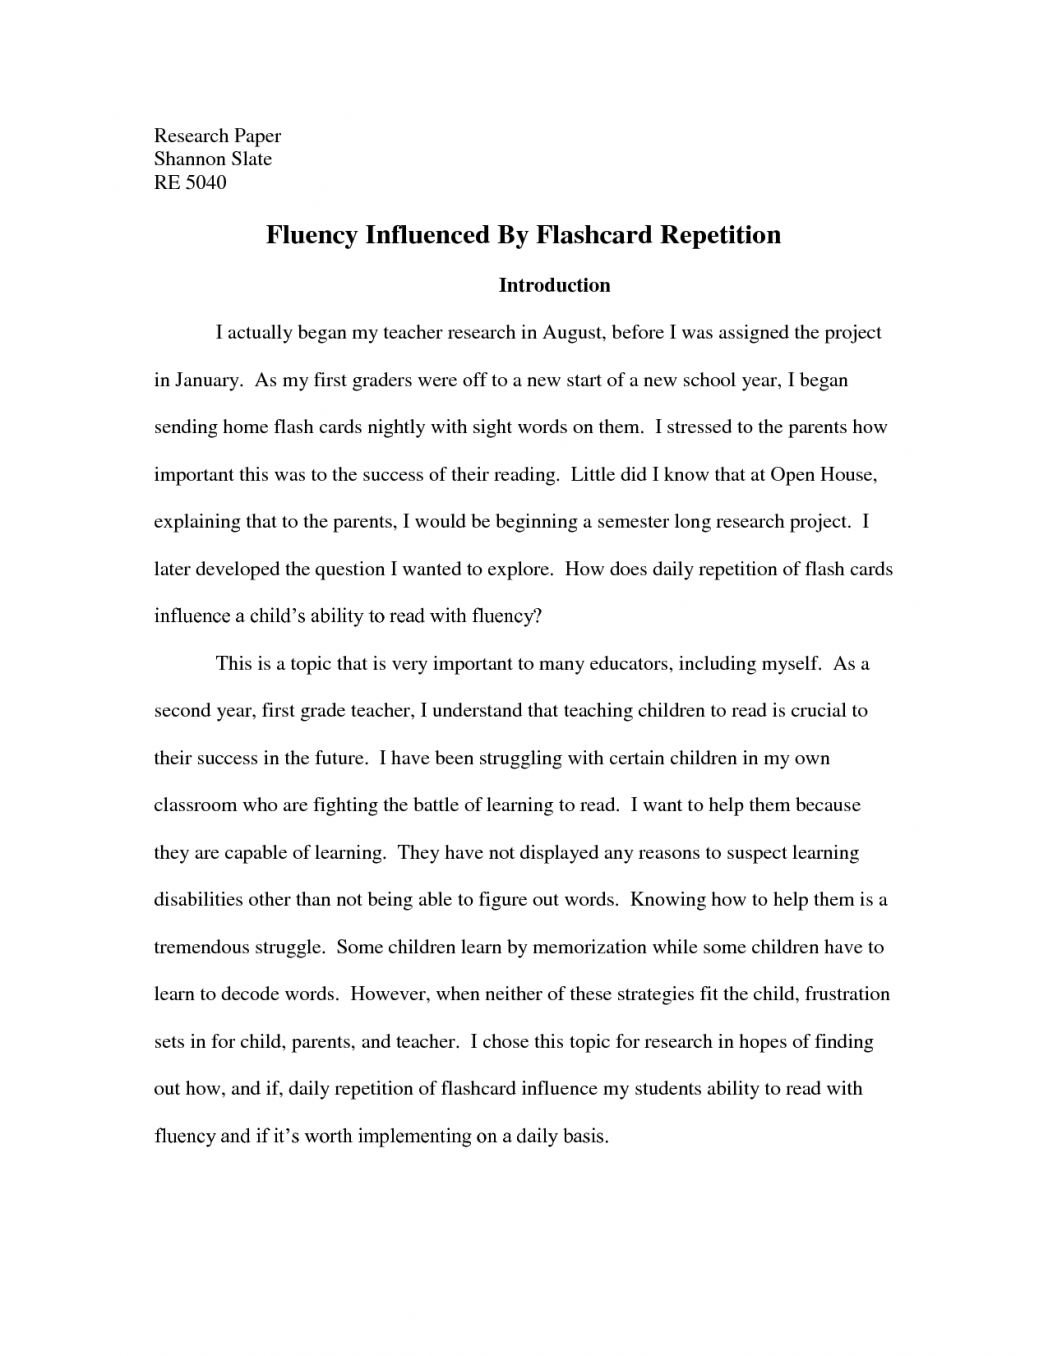 009 Words To Start Off Essay Begin Paragraph In An Argumentative Conclusion Persuasive End The First Body Sentence 1048x1356 Example Excellent How Write A Good About Your Life 3 Full